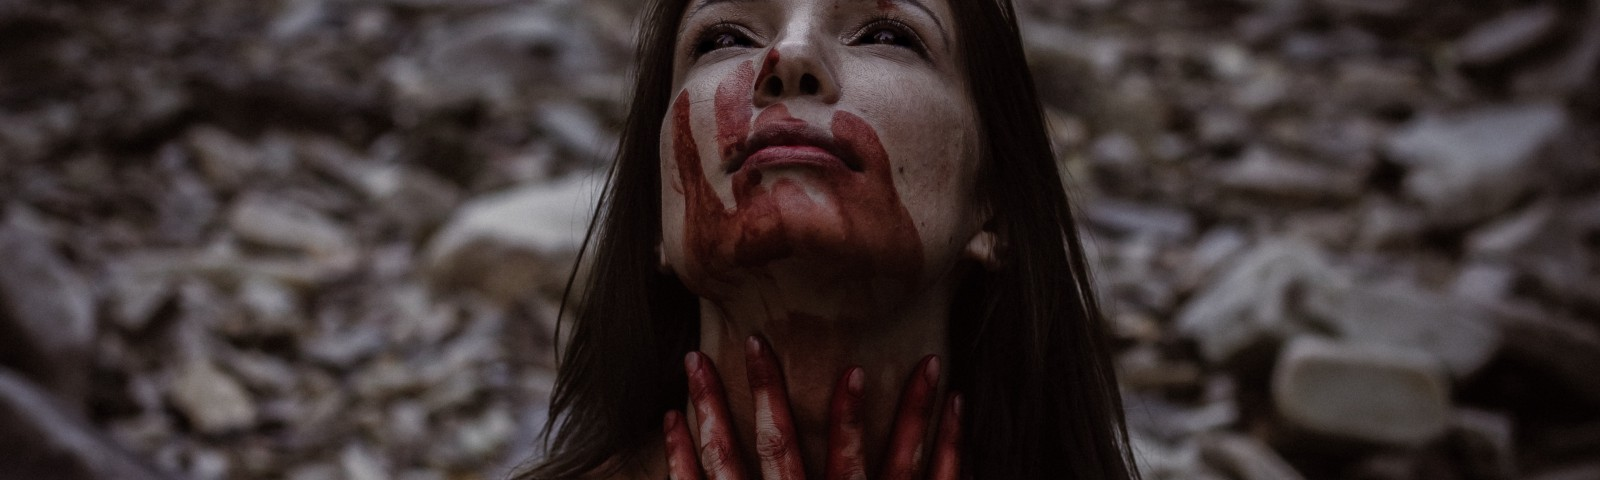 A lady covered in blood staring up into the sky. The blood may be from her hands.